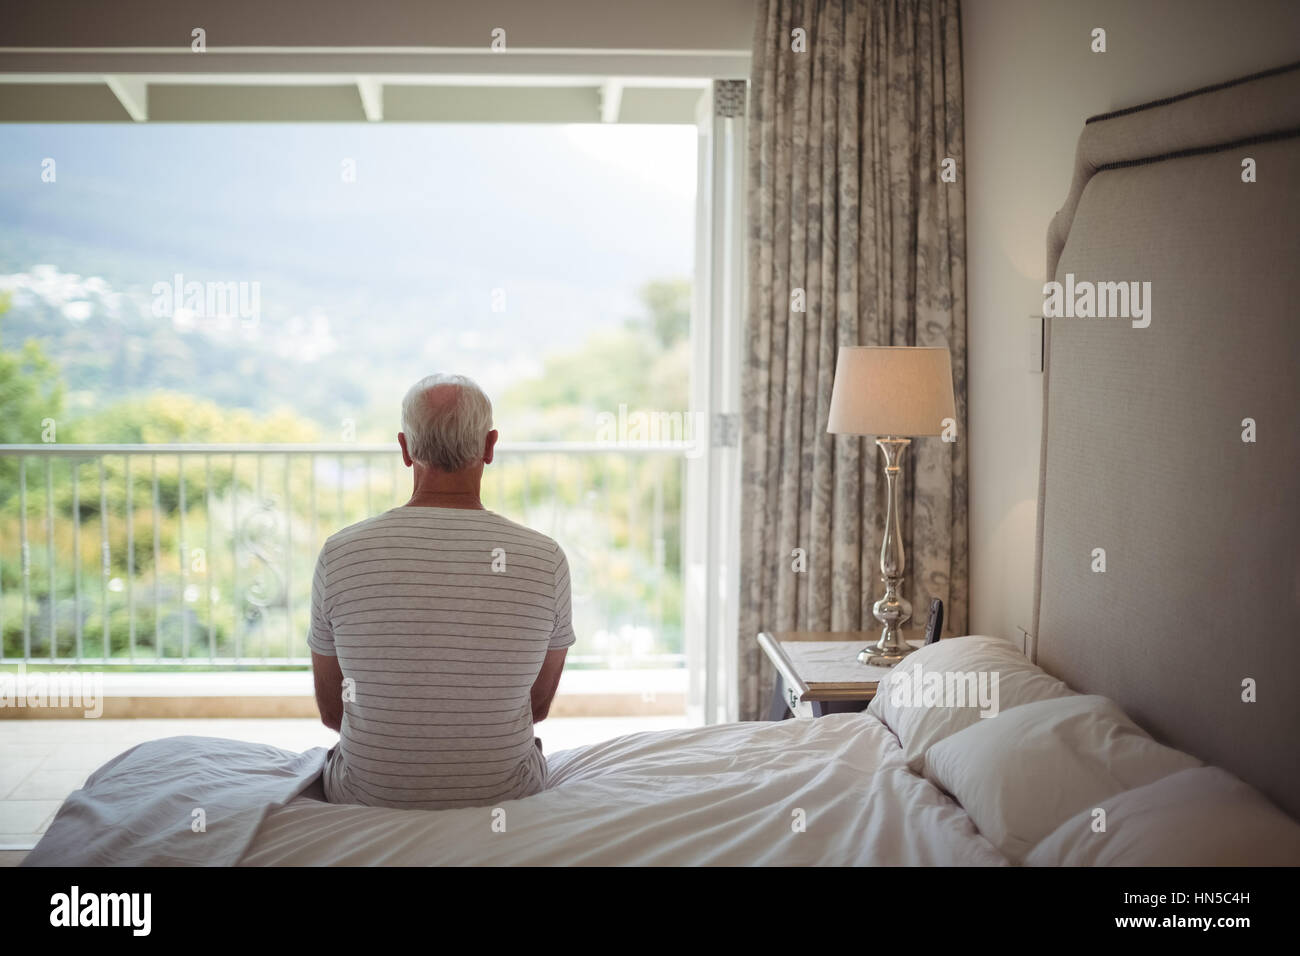 Senior man in bedroom looking at the view through the window - Stock Image